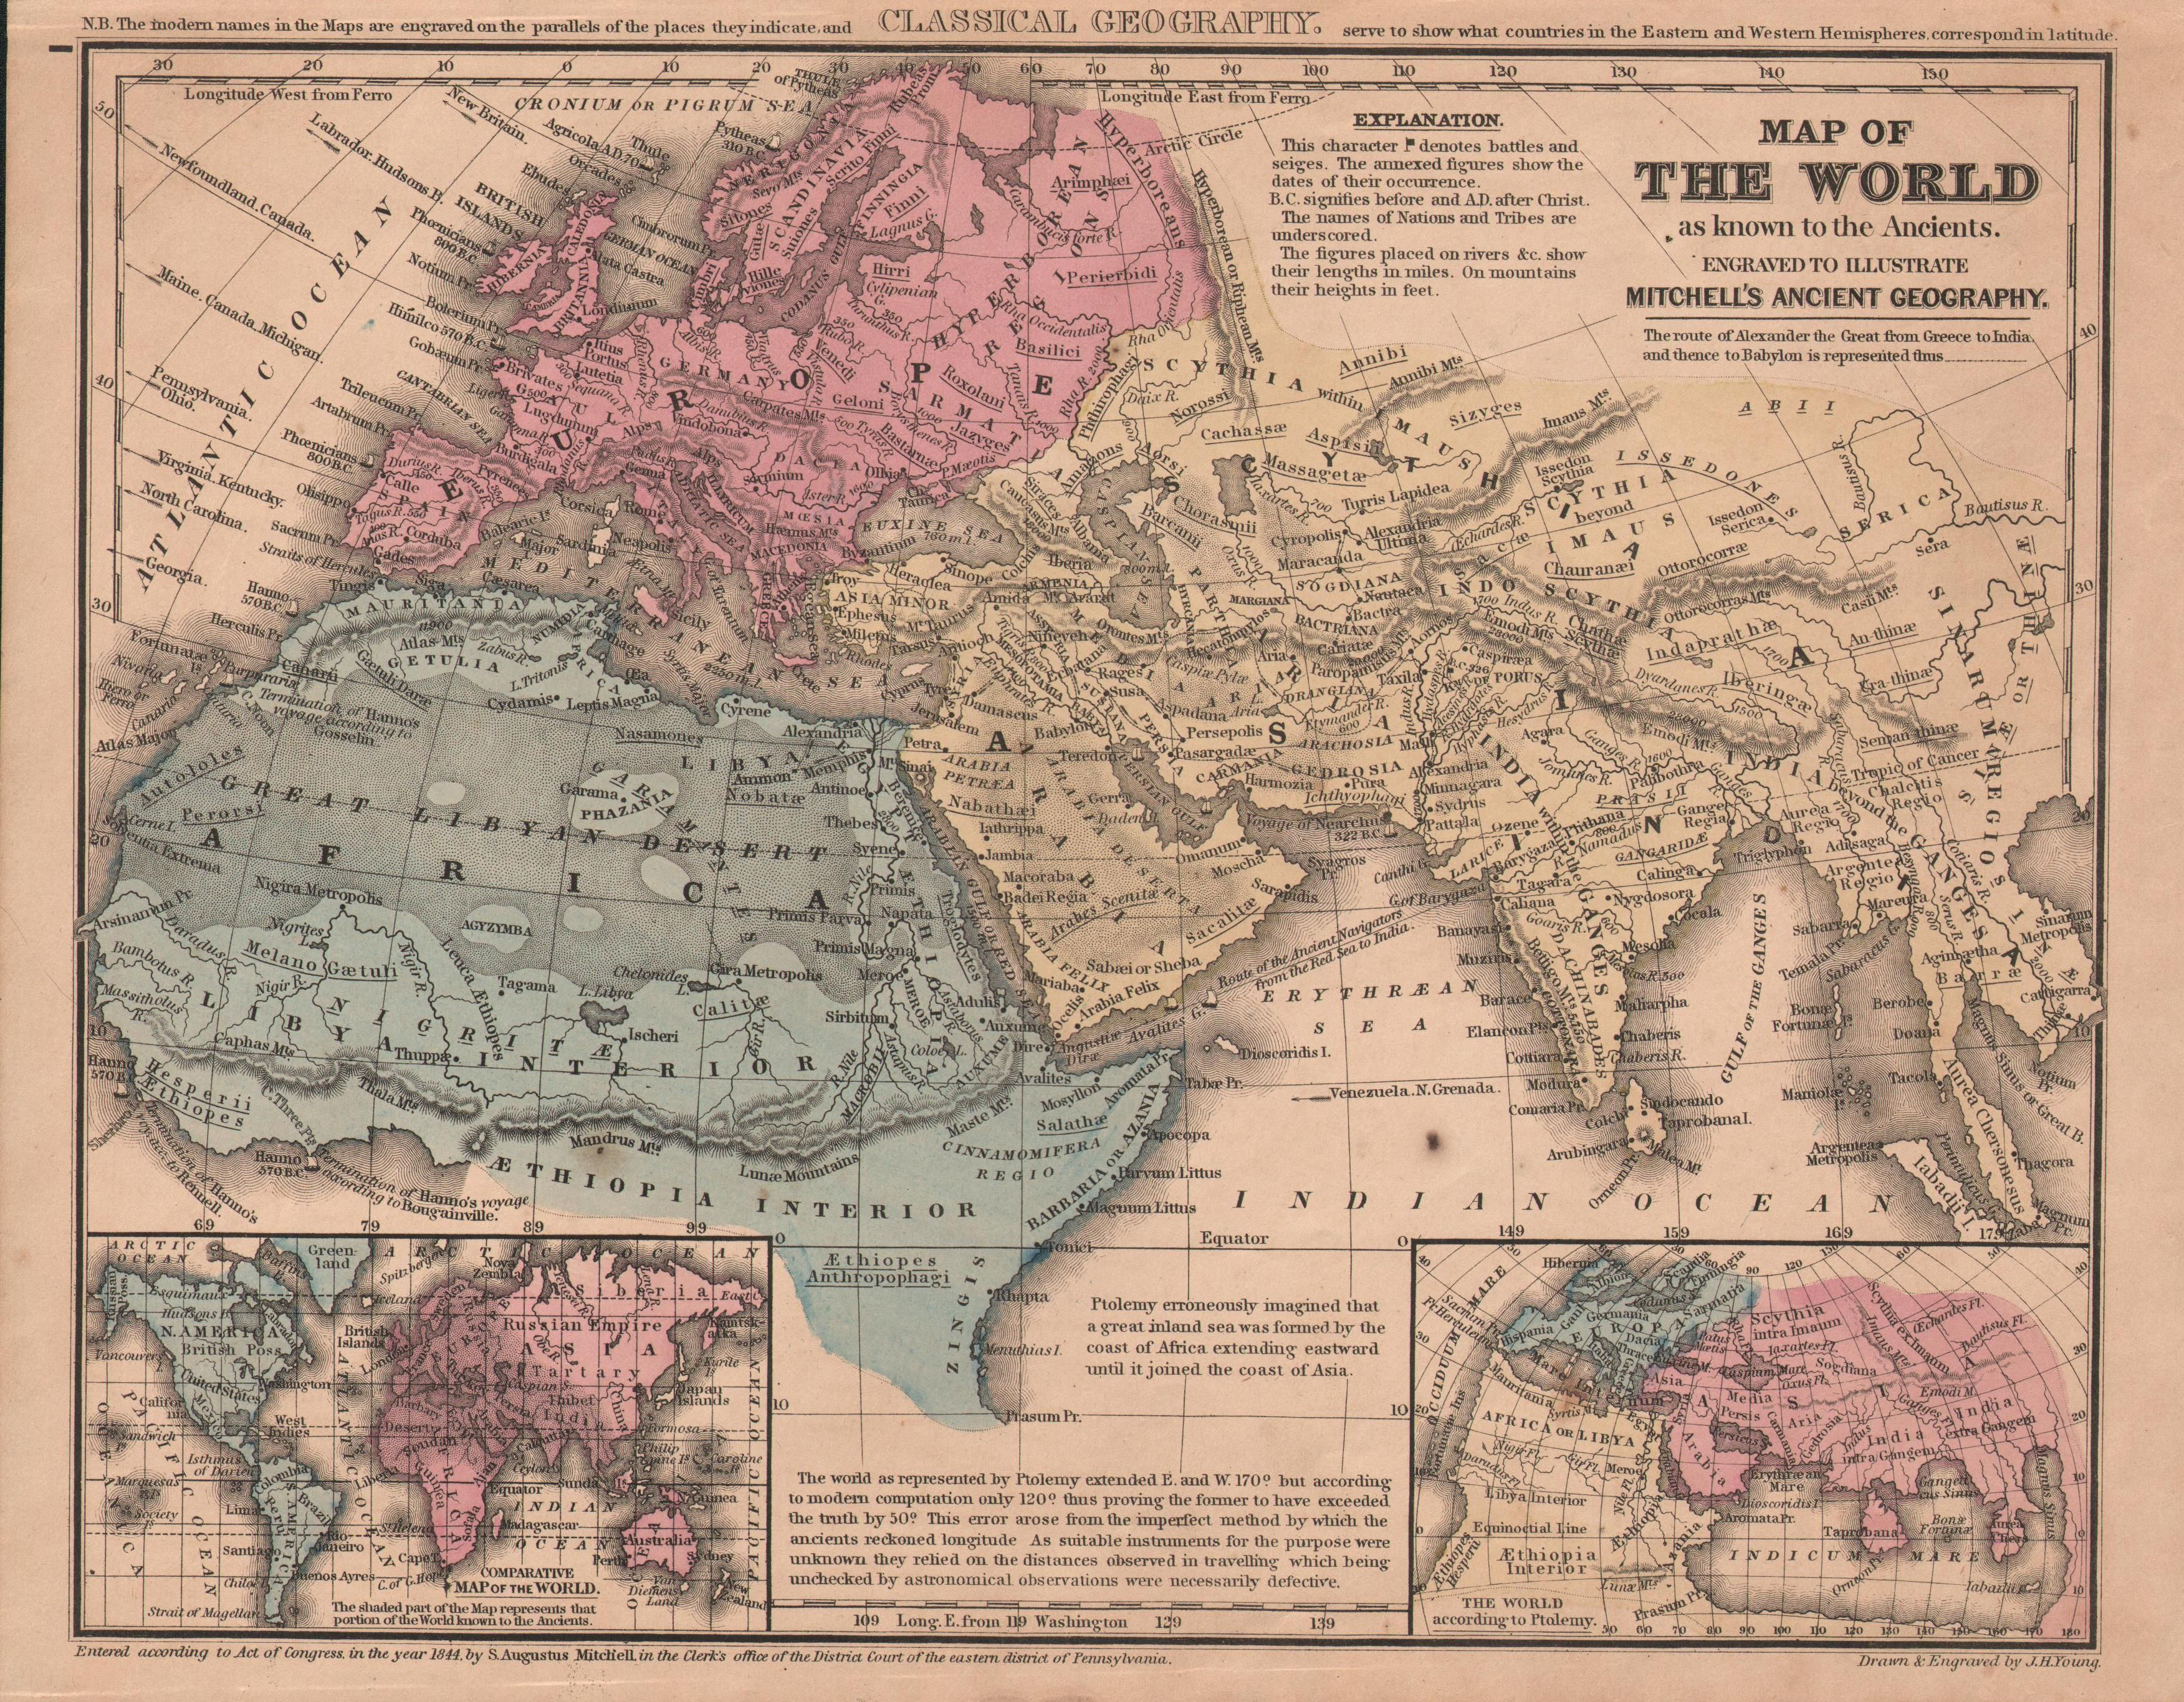 1844 #Map of the world, as known in ancient times